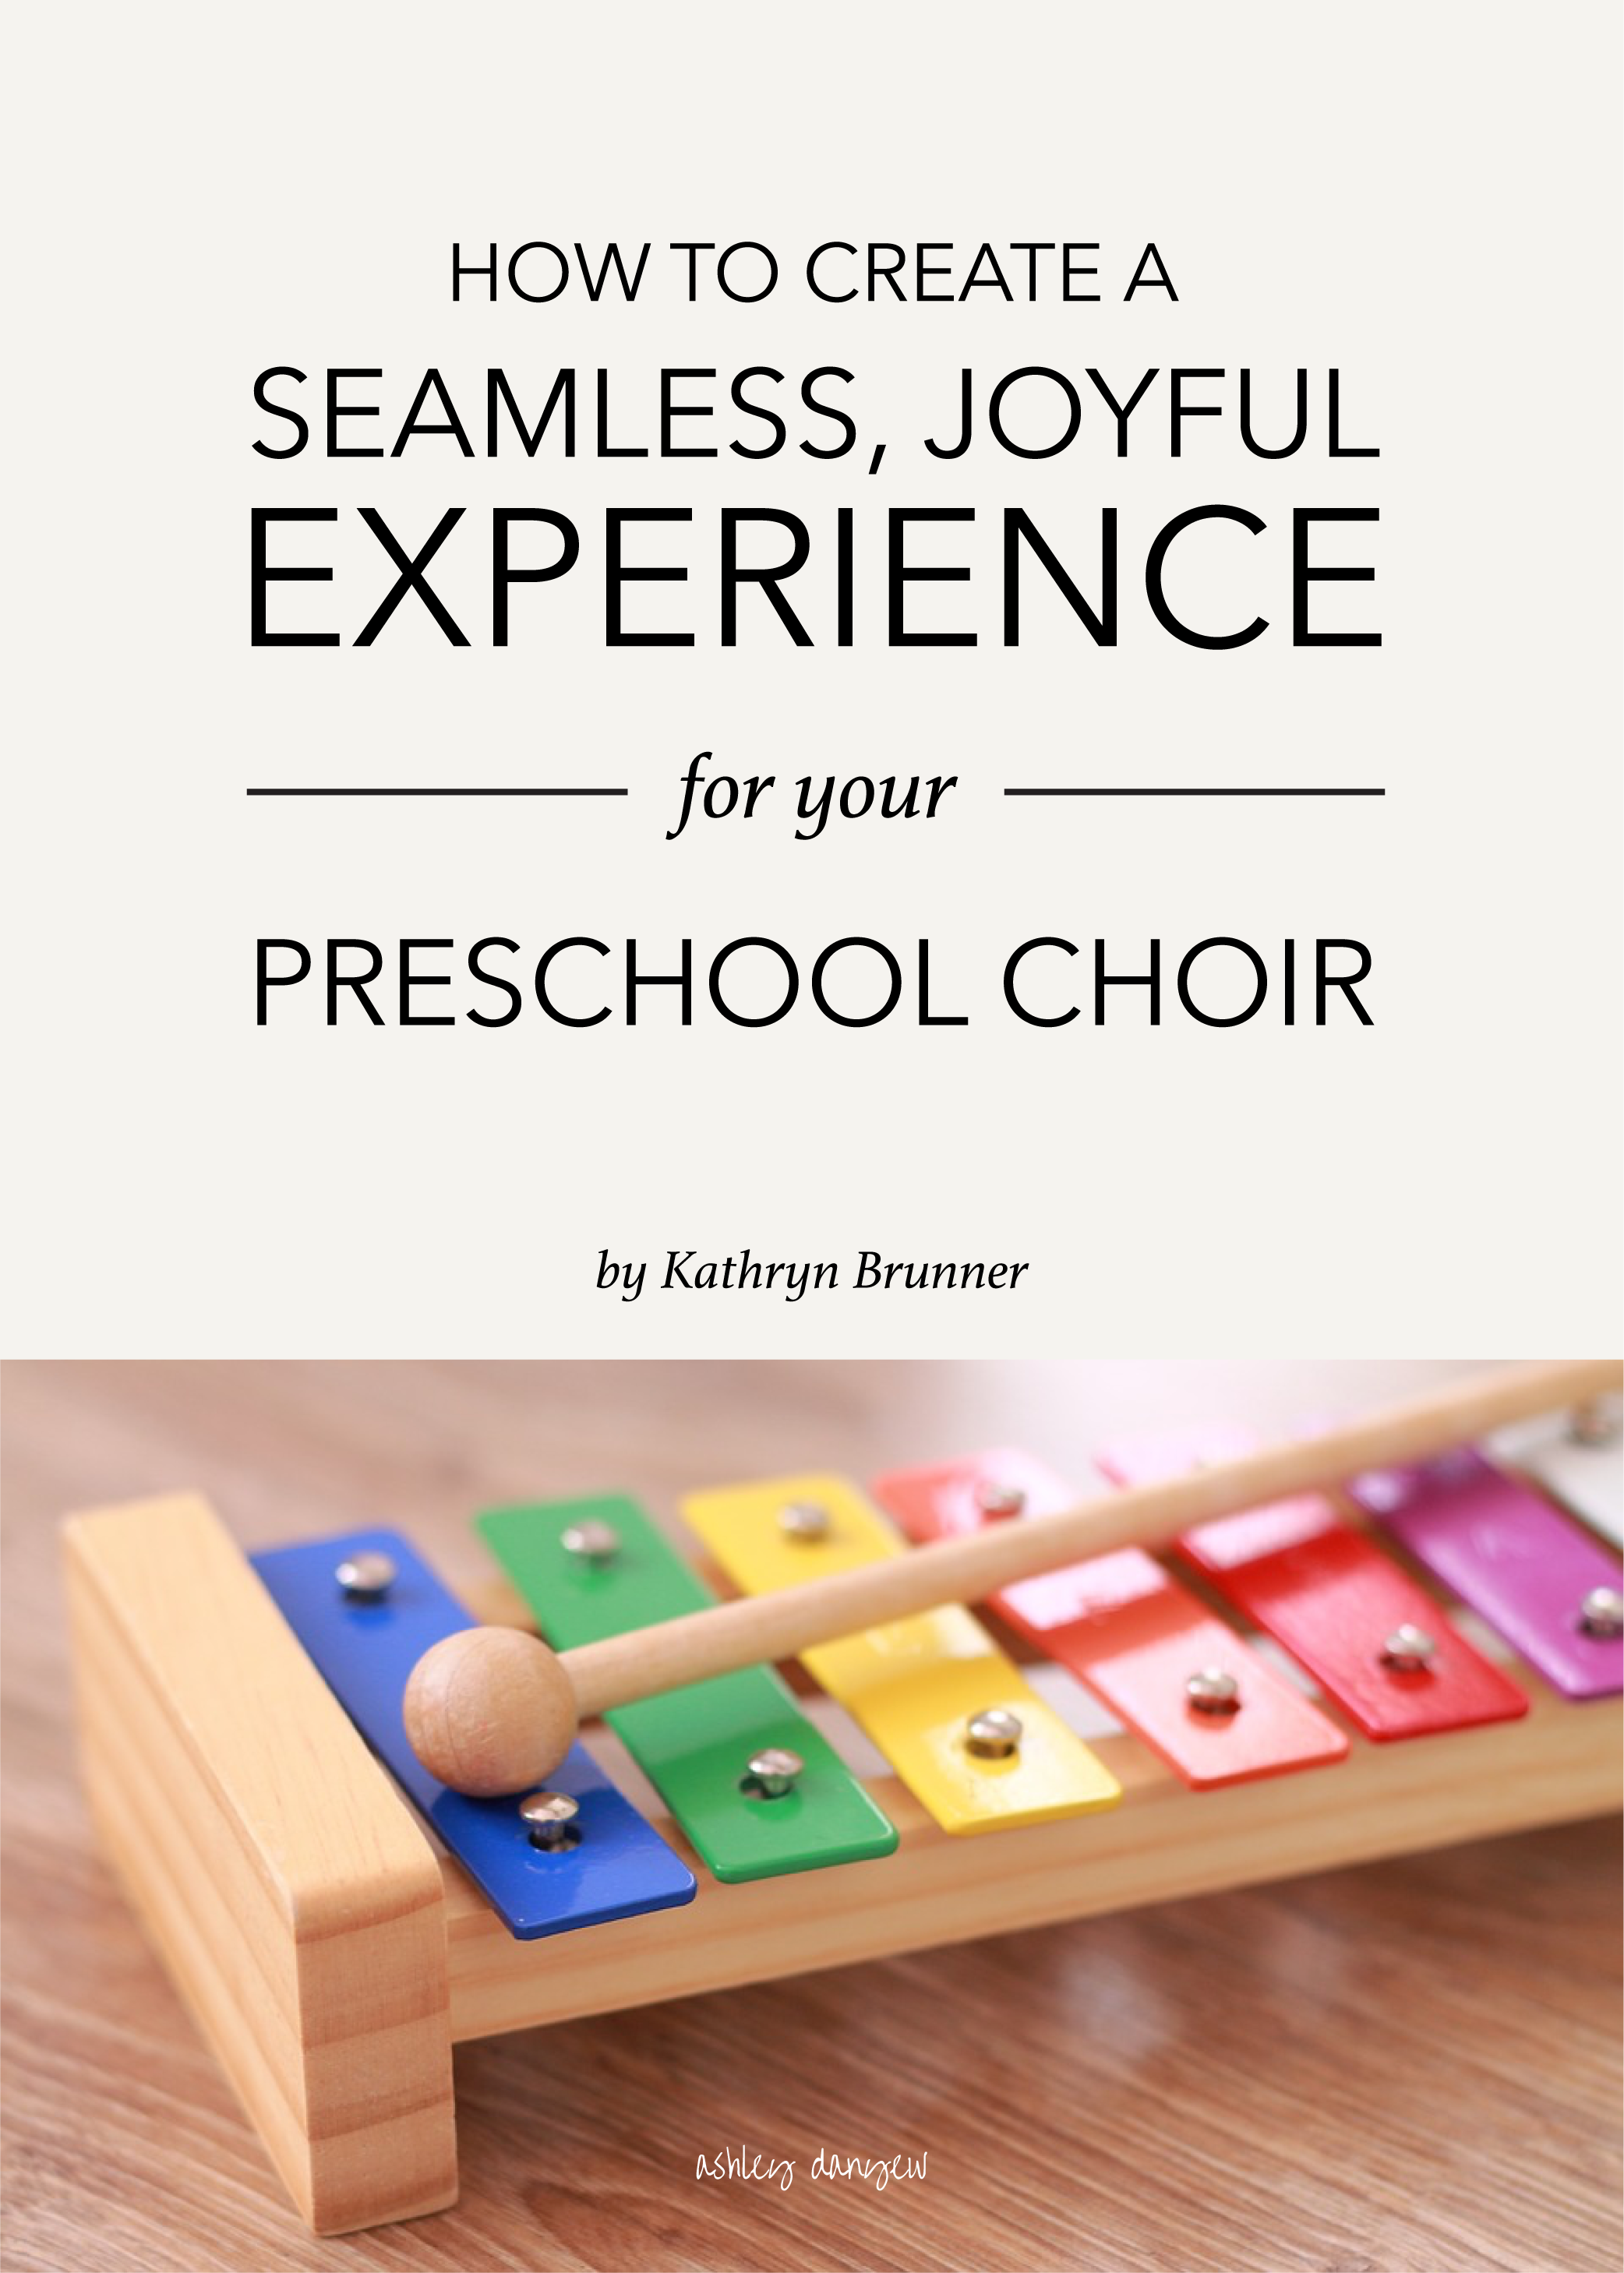 Copy of How to Create a Seamless, Joyful Experience for Your Preschool Choir